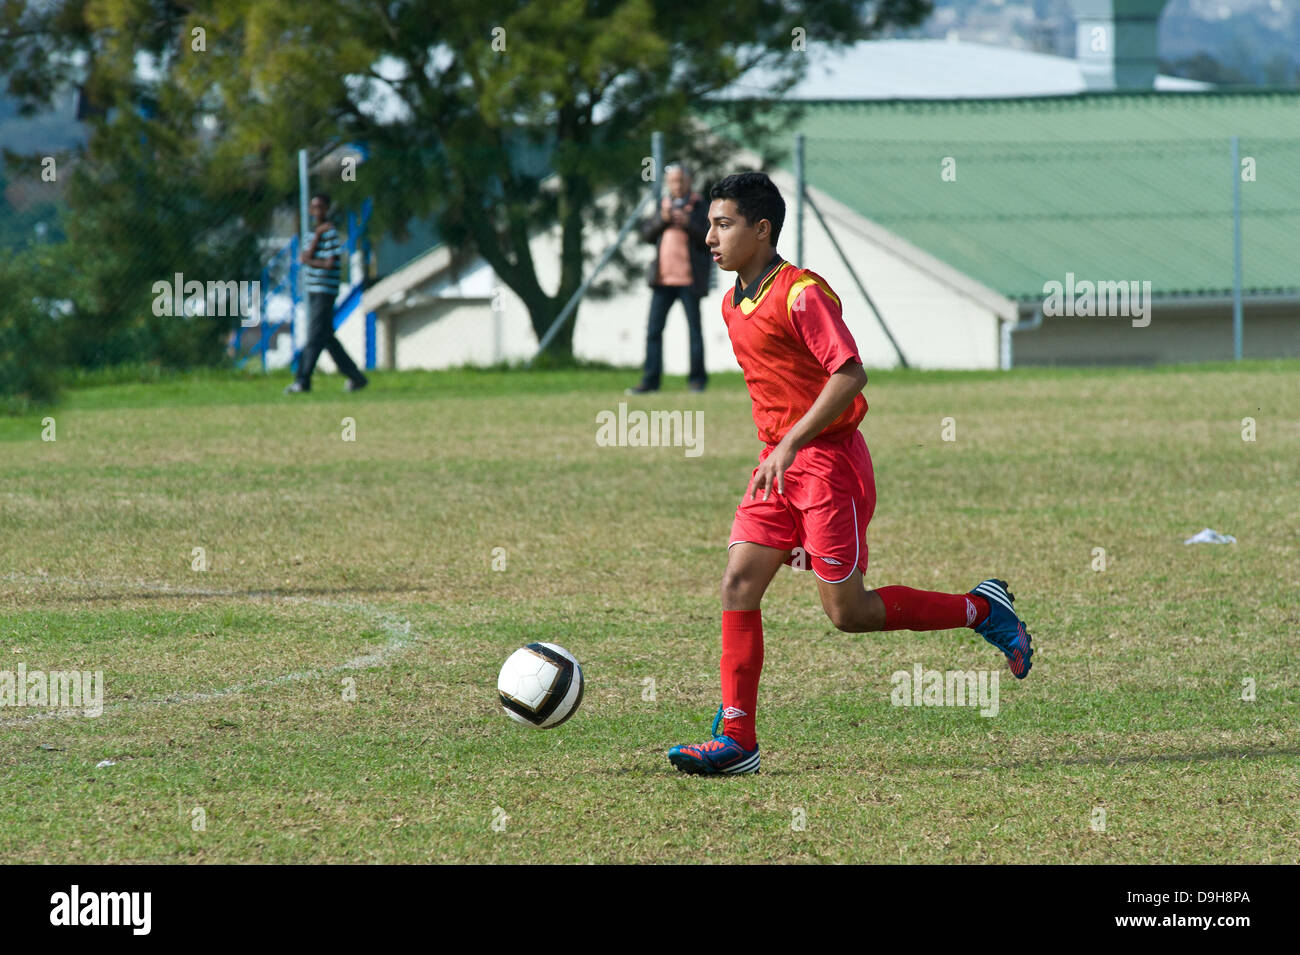 U15 Junior football player in a league match, Cape Town, South Africa - Stock Image